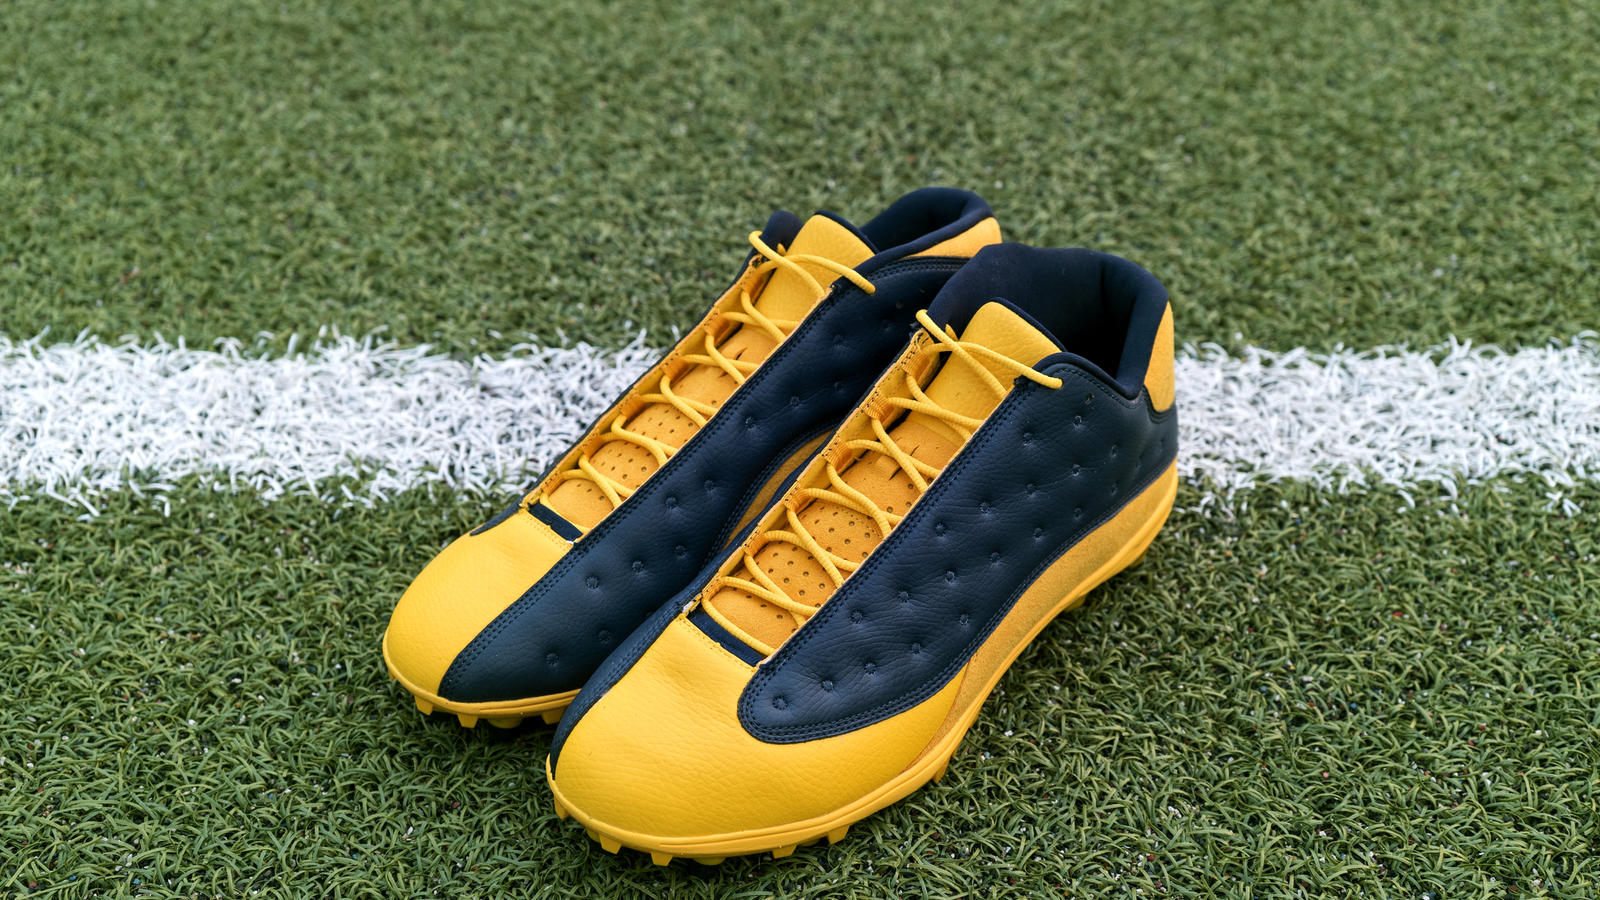 Jordan Brand's Football Roster Debuts New Air Jordan XIII PE Cleats 15